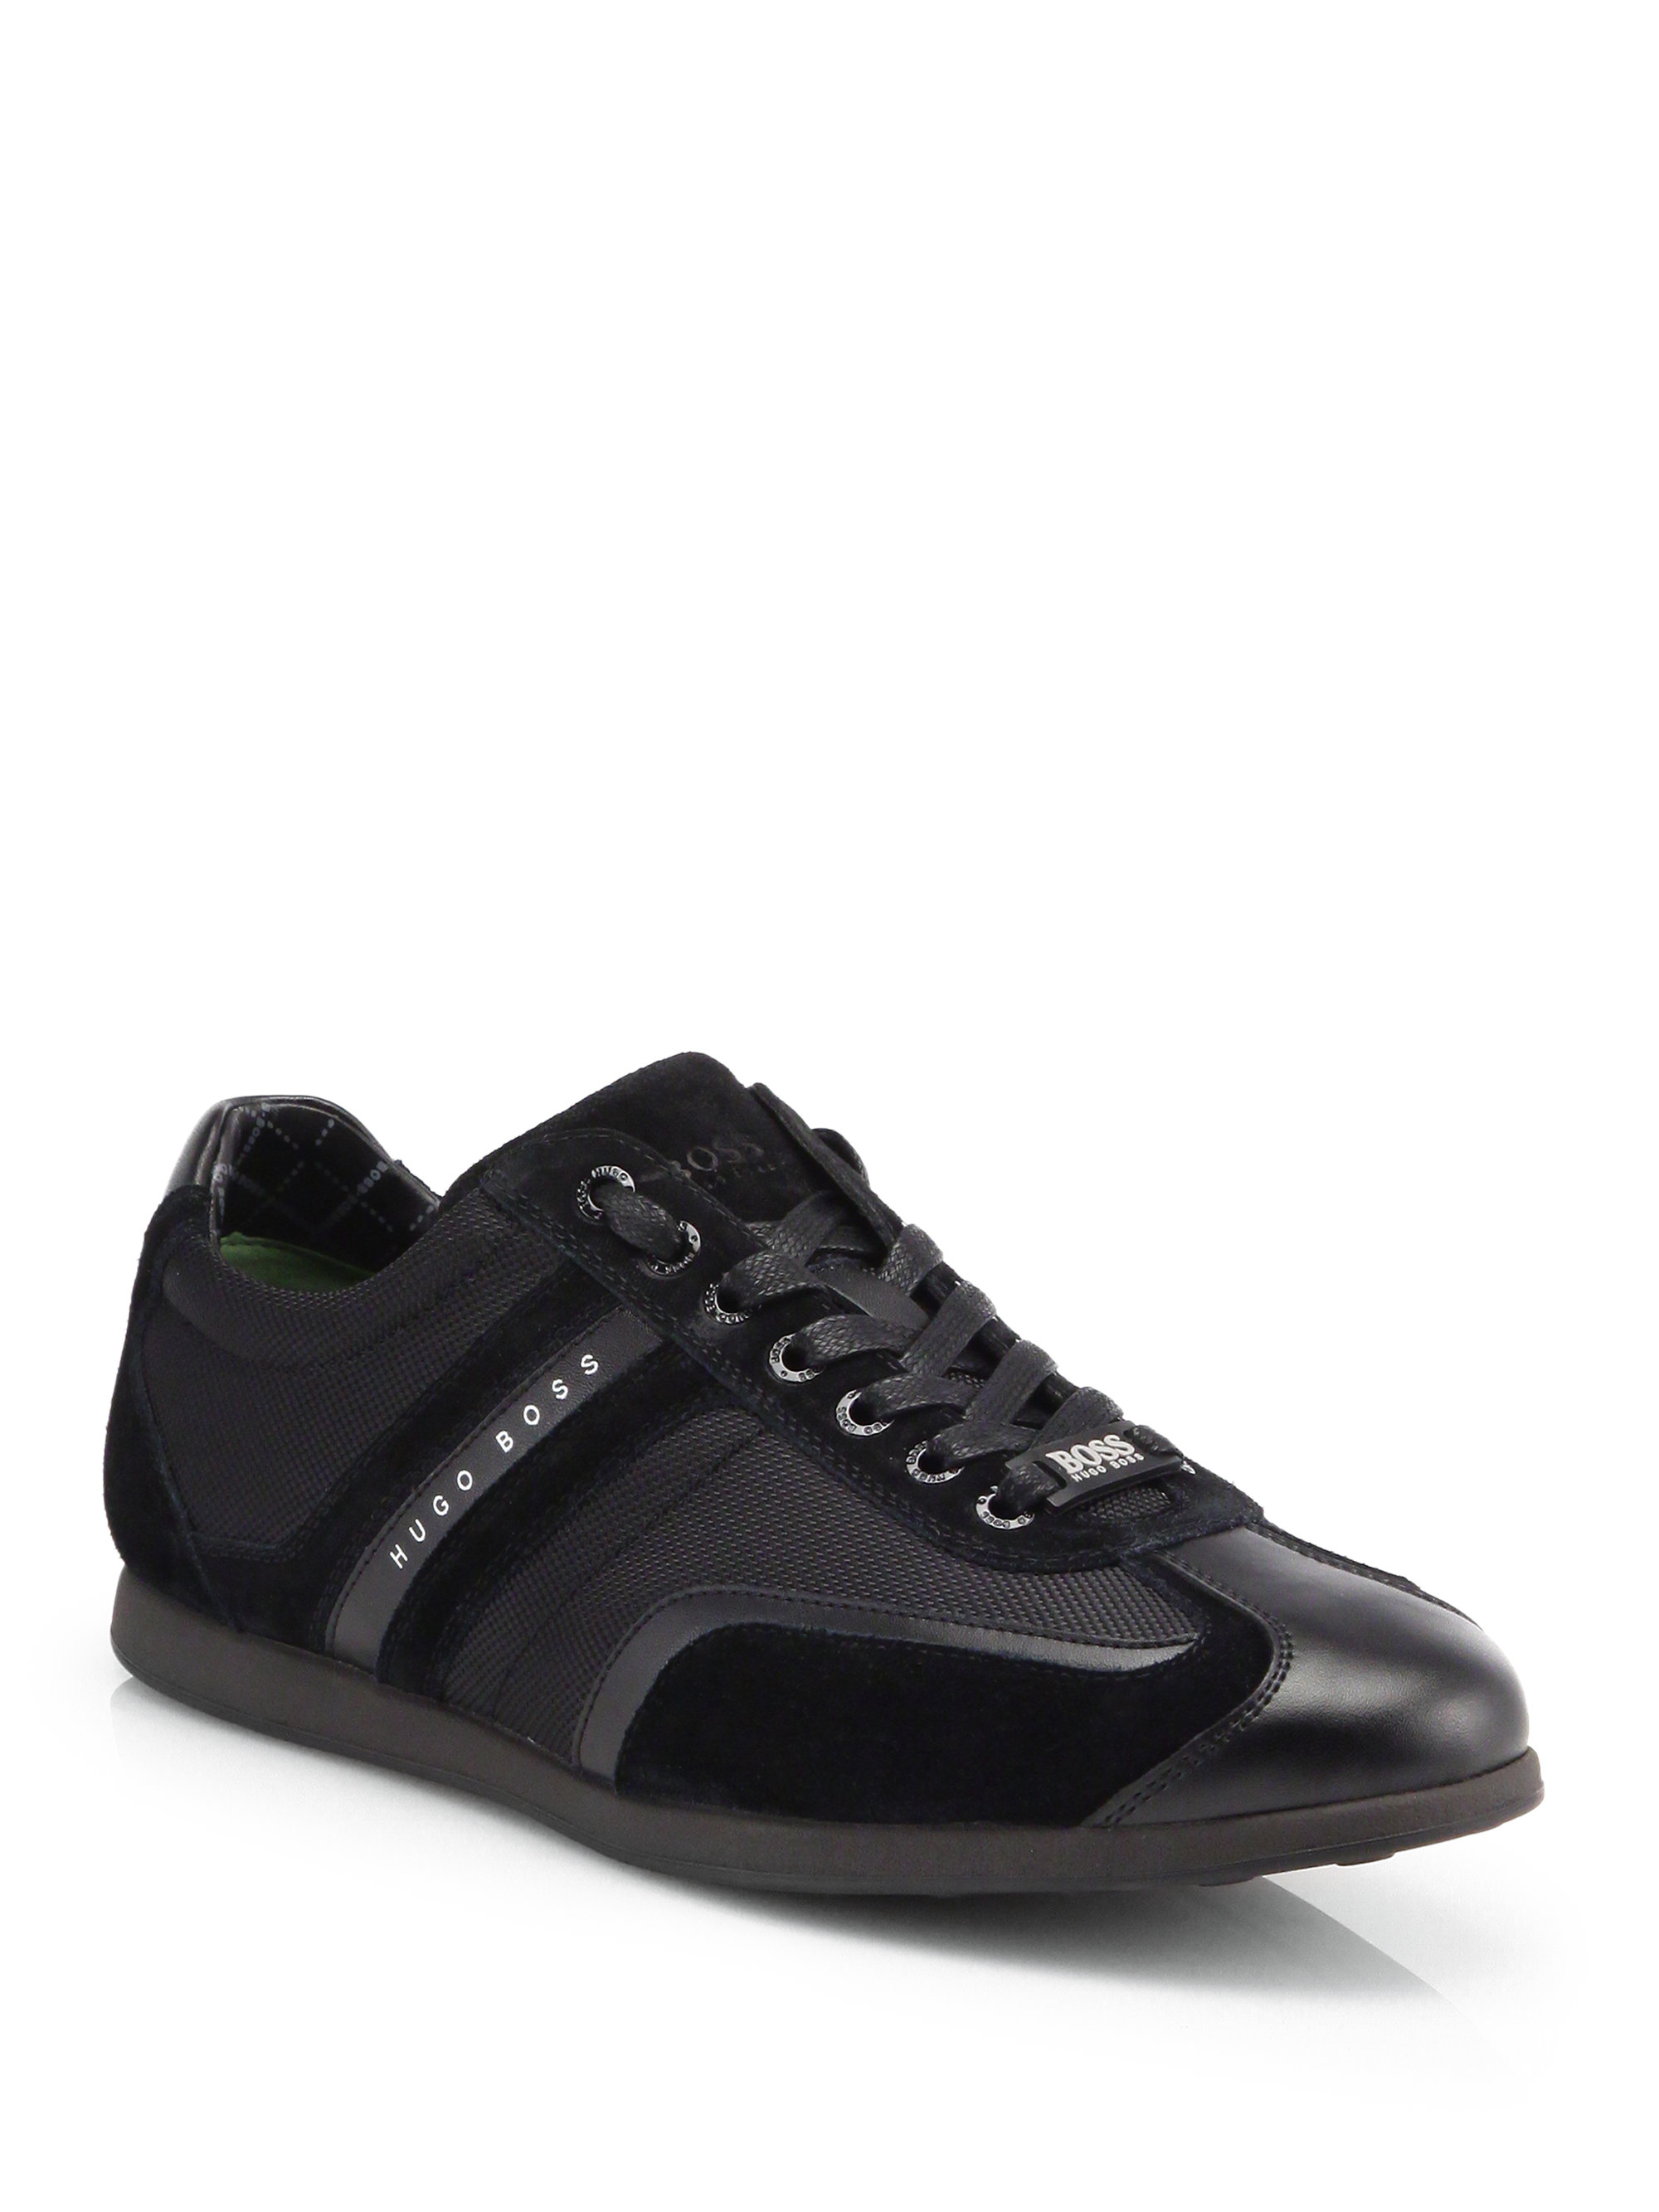 boss by hugo boss stiven lowtop sneakers in black for men lyst. Black Bedroom Furniture Sets. Home Design Ideas